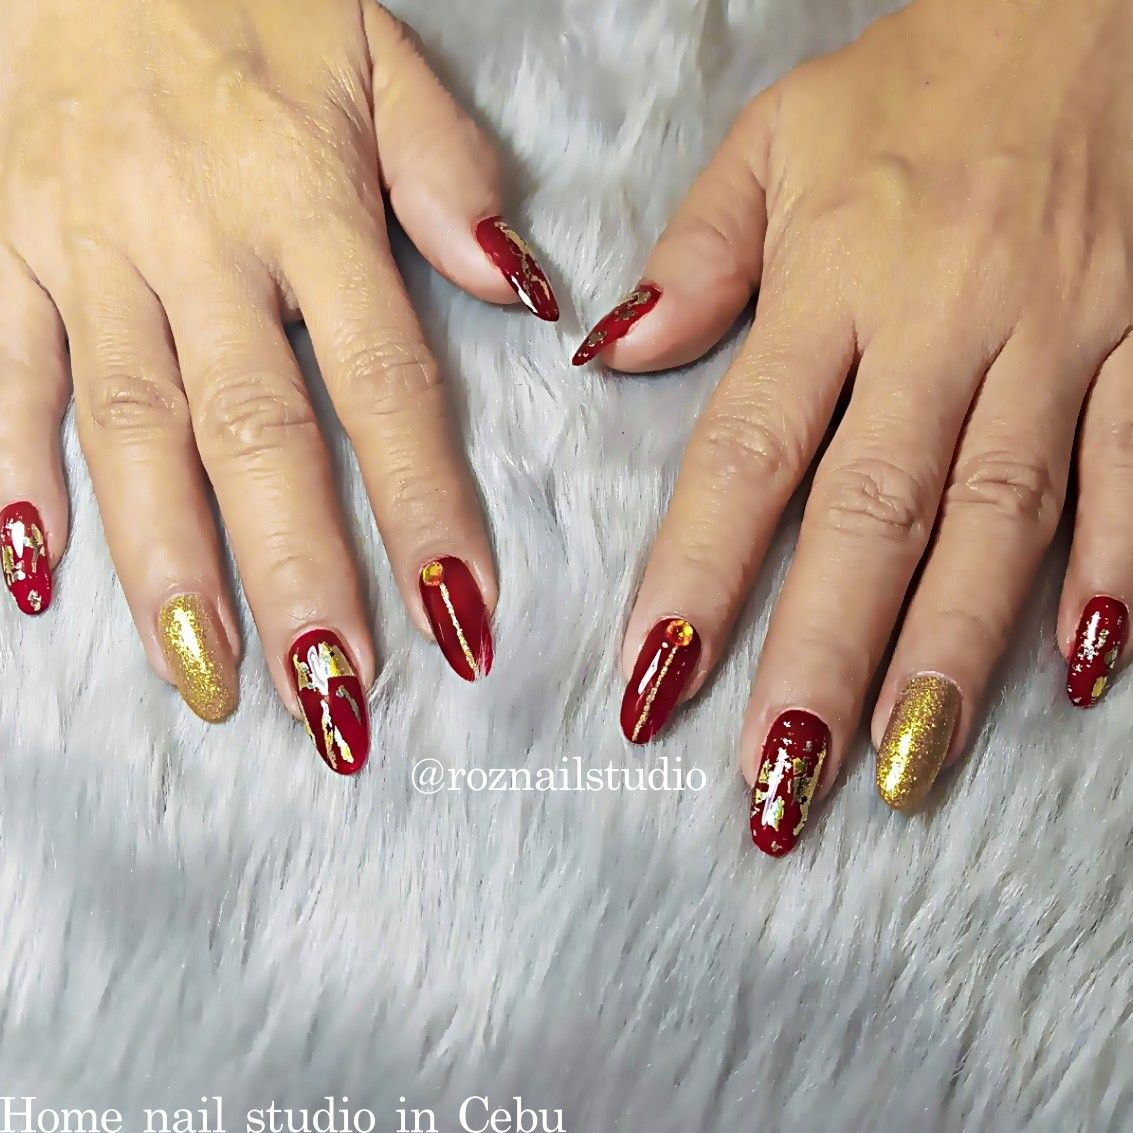 Pin By Roz Nail Studio Cebu On My Work Convenience Store Products Convenience Store